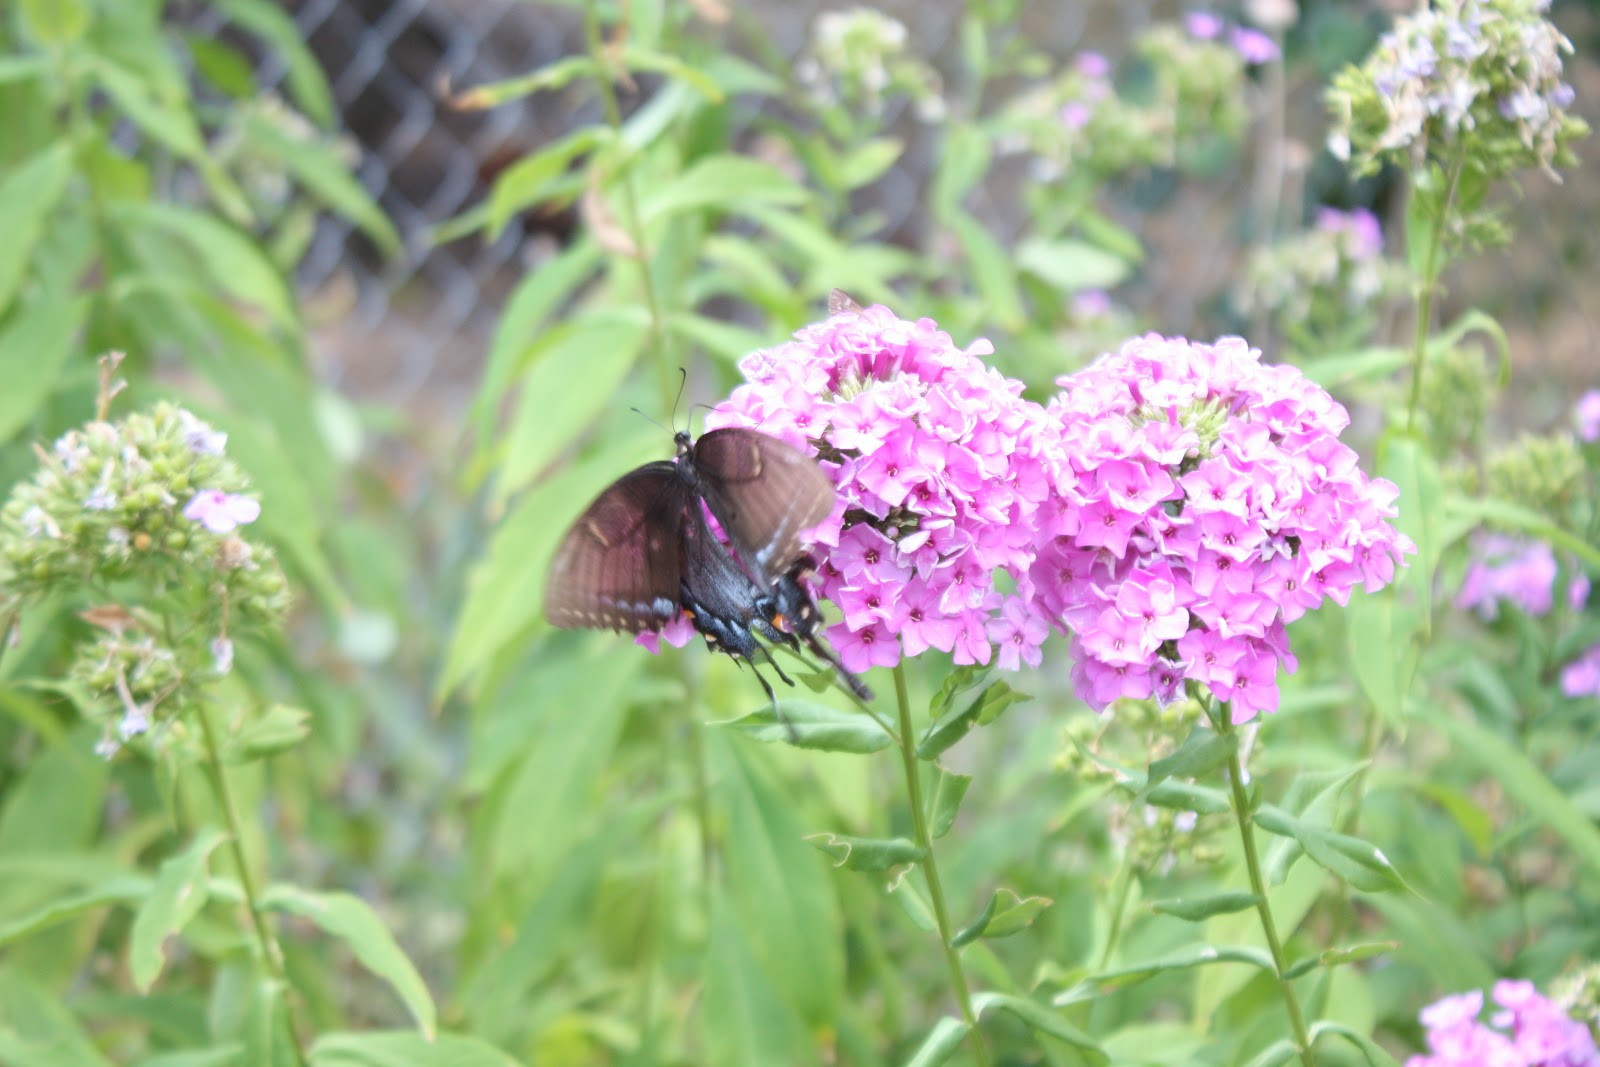 Old Fashioned Flowers Have The Most Butterfly Nectar